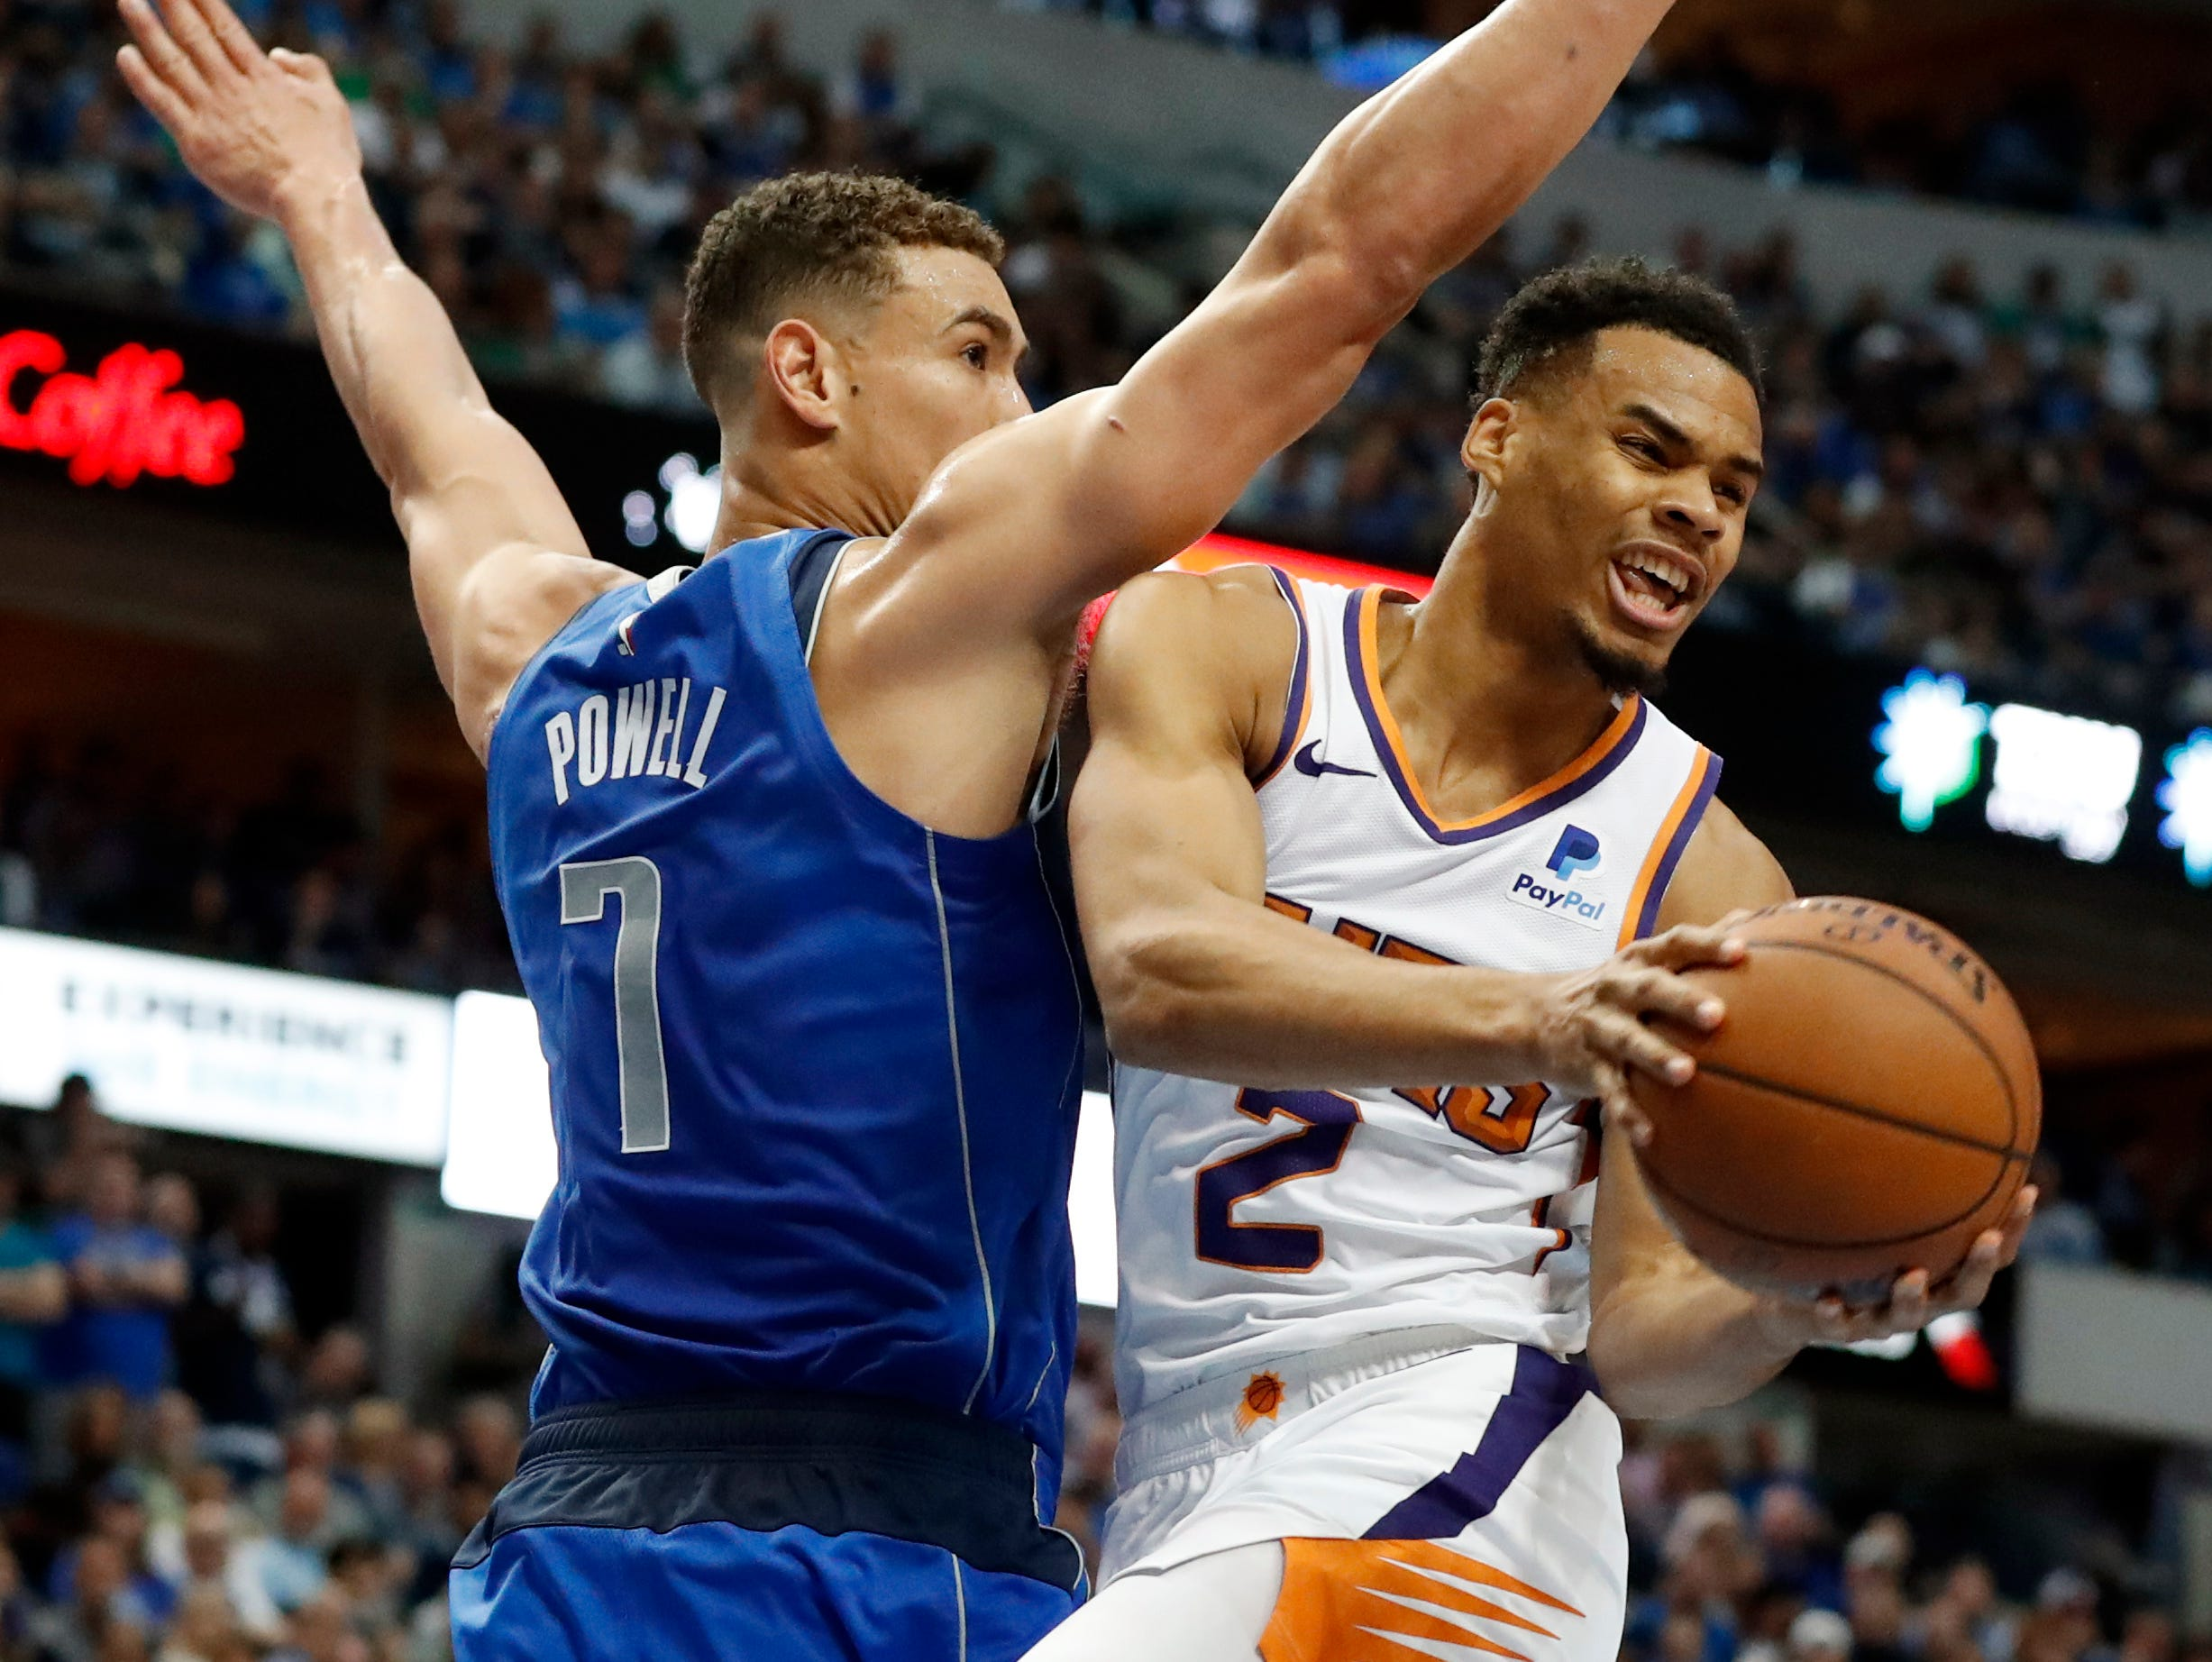 Dallas Mavericks' Dwight Powell (7) turns Phoenix Suns guard Elie Okobo (2) away on a shot attempt during the first half of an NBA basketball game in Dallas, Tuesday, April 9, 2019. (AP Photo/Tony Gutierrez)